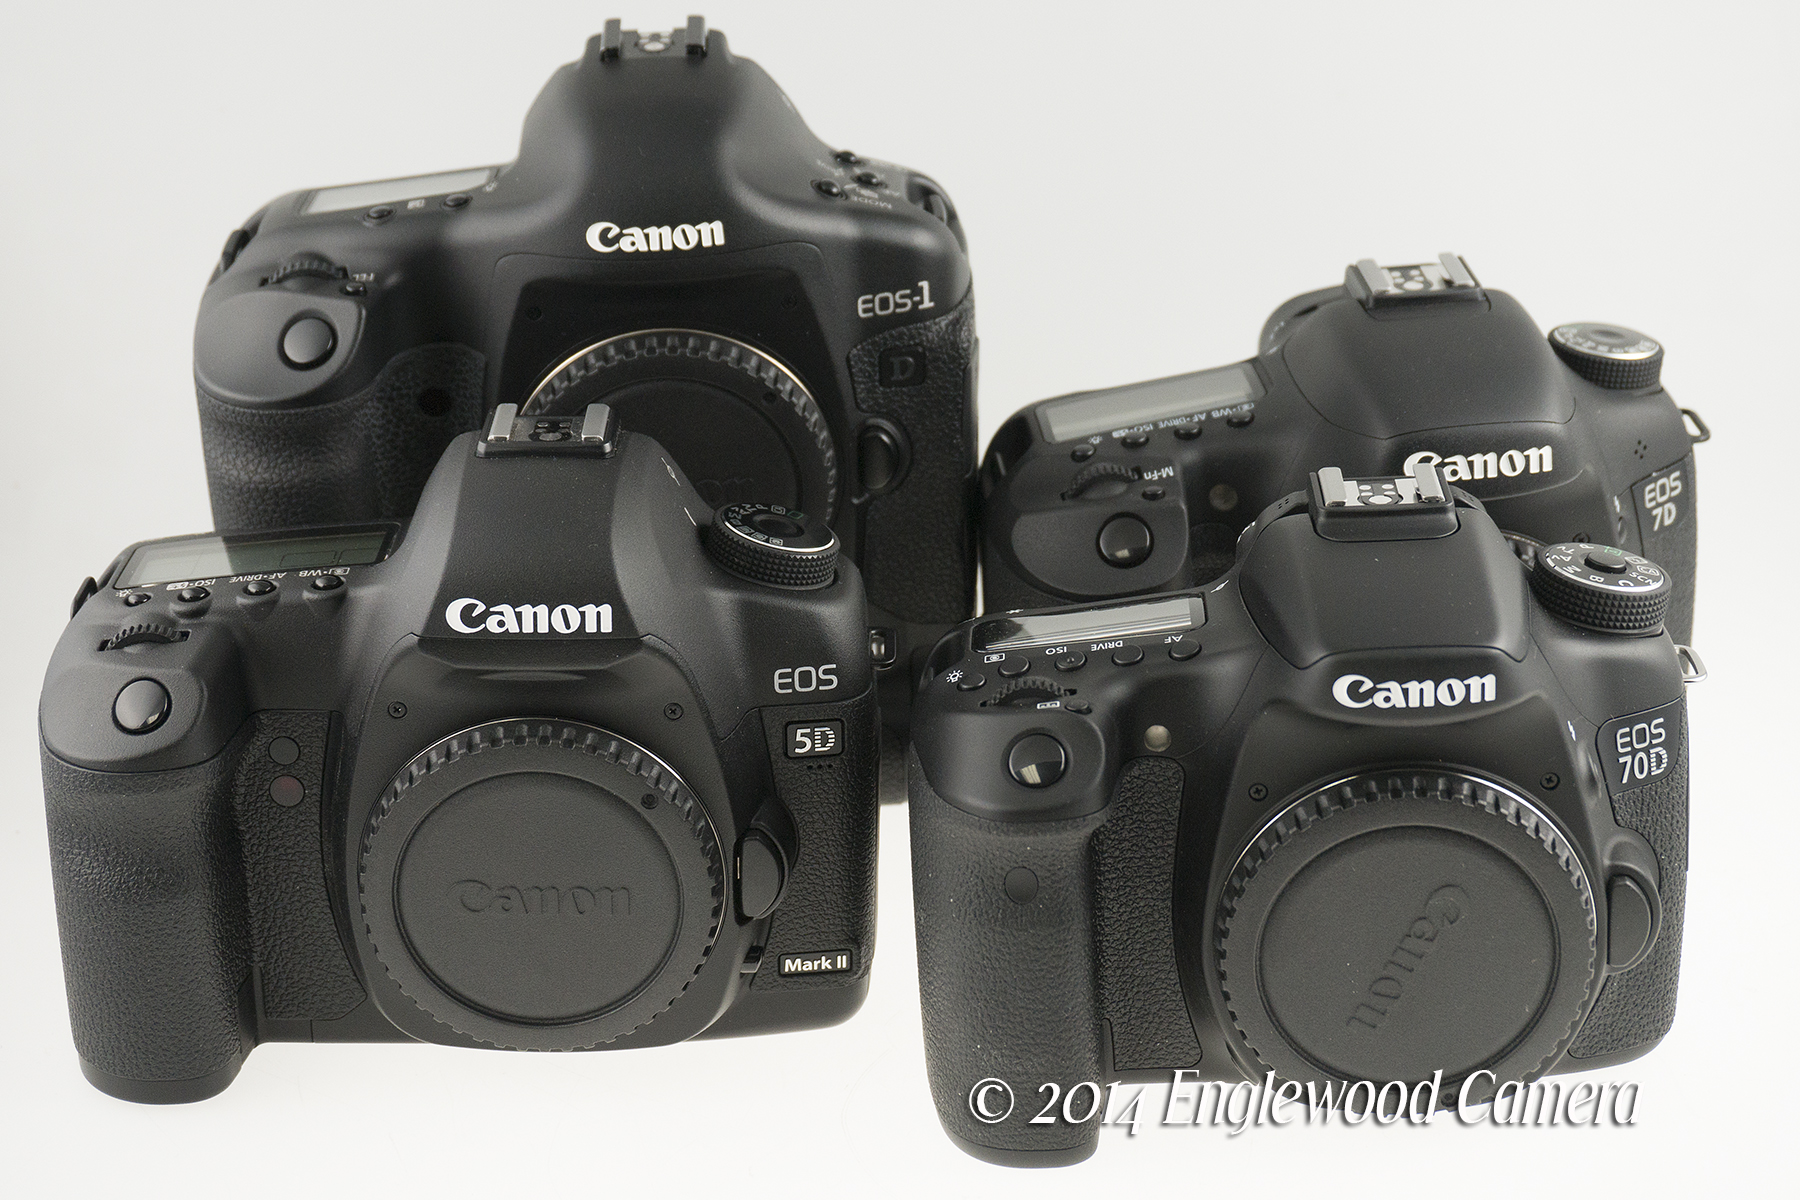 Camera Pre Owned Dslr Camera december 2014 englewood camera canon dslrs